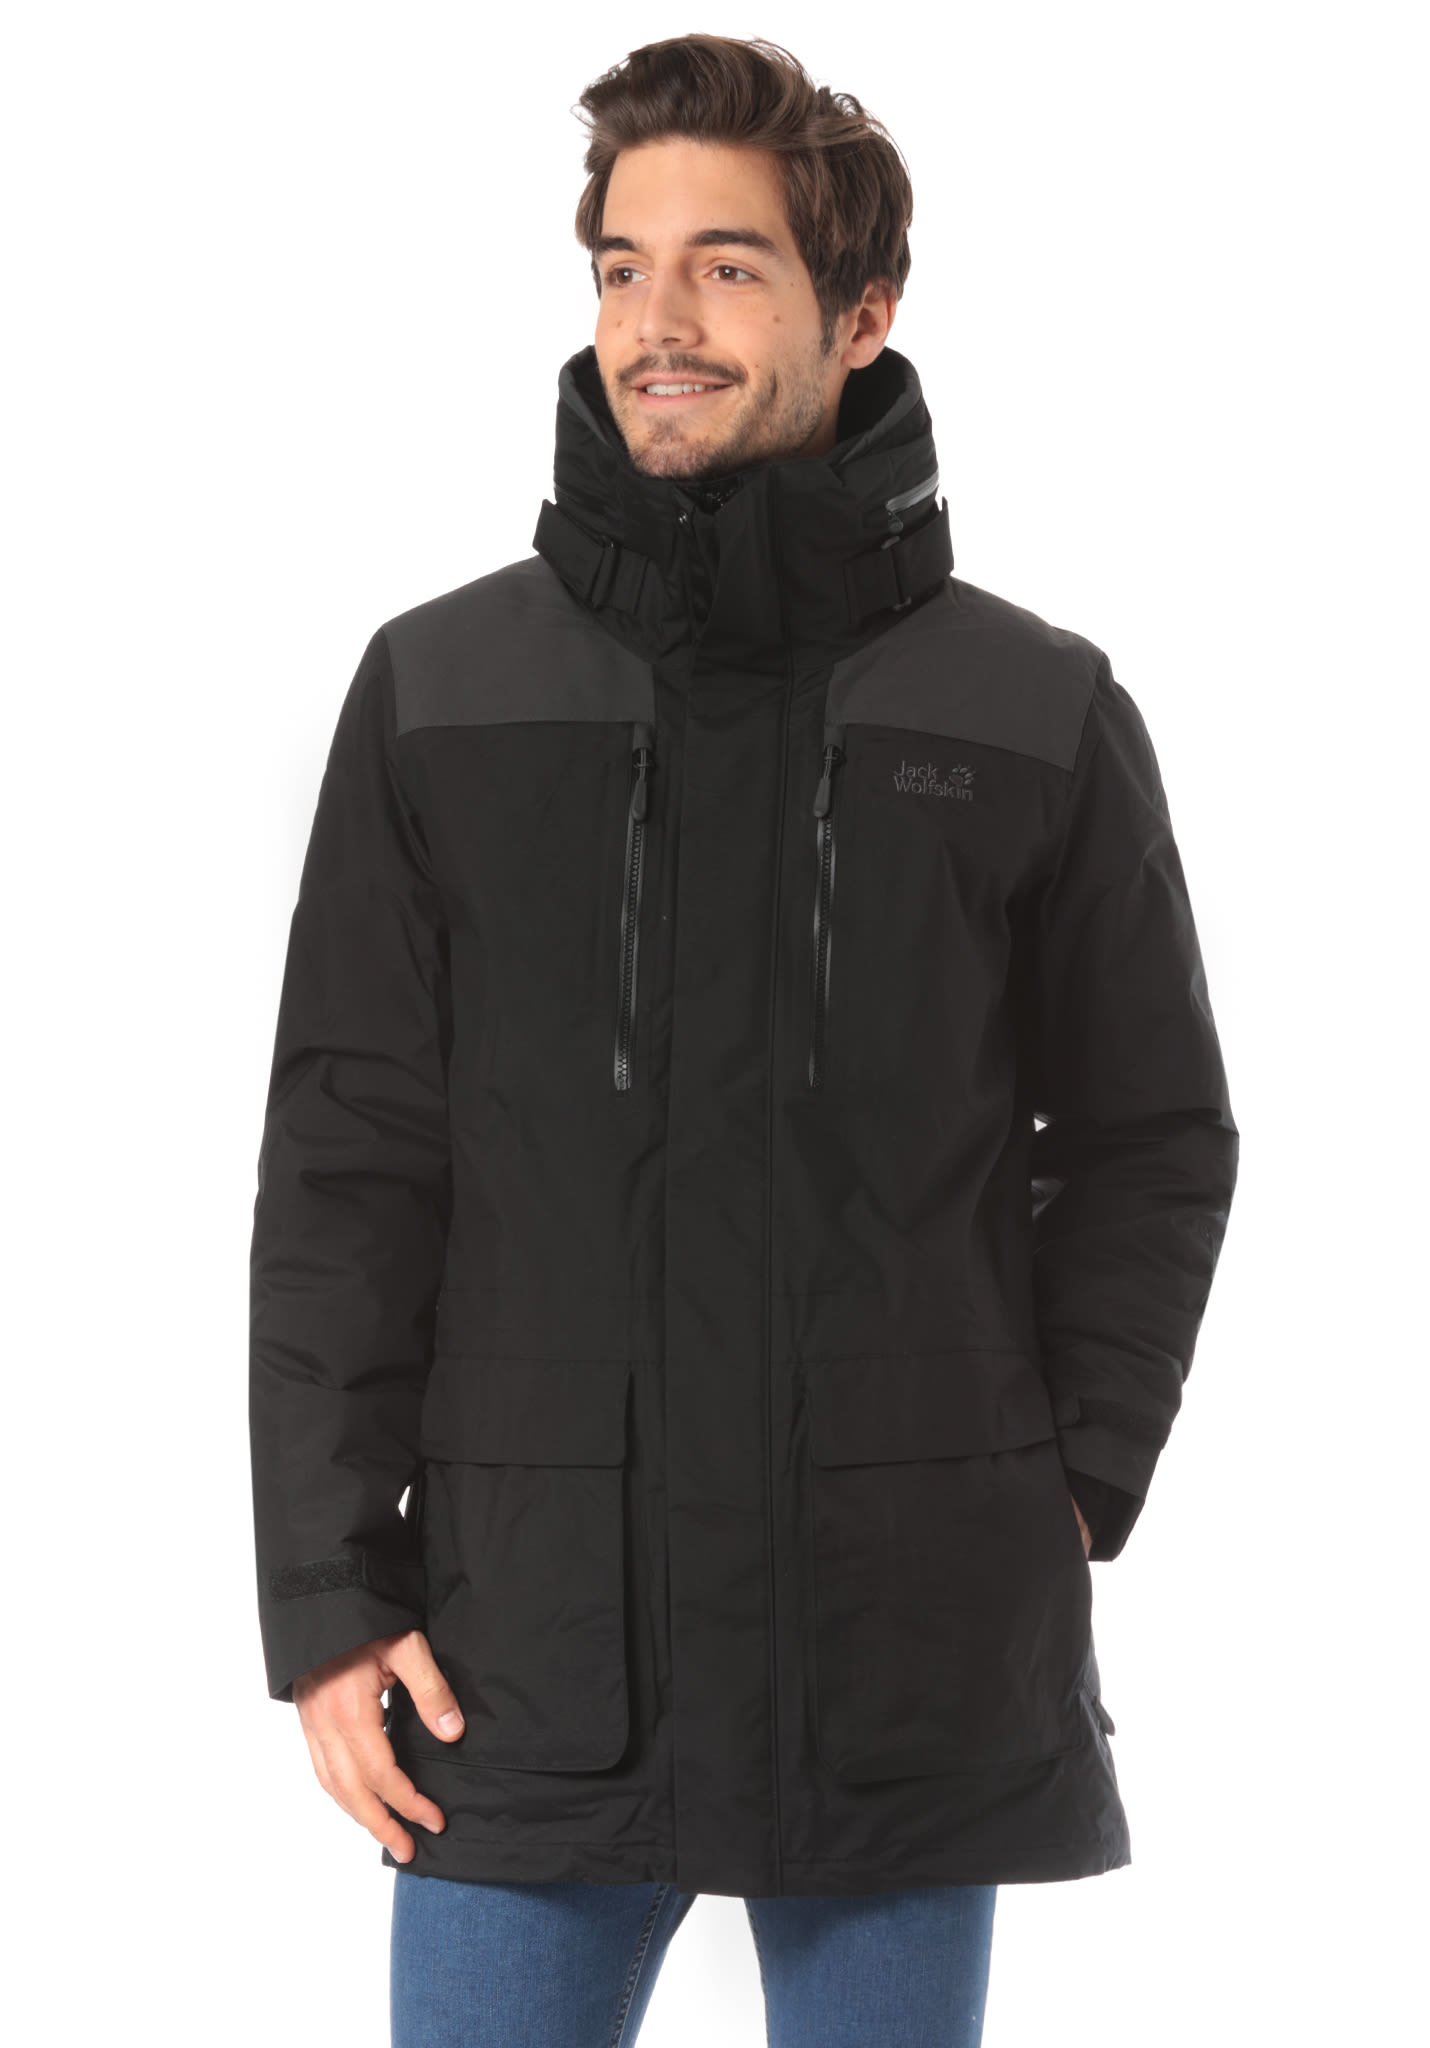 lowest price d8a3d c5362 Jack Wolfskin Yukon - Giacca outdoor per Uomo - Nero